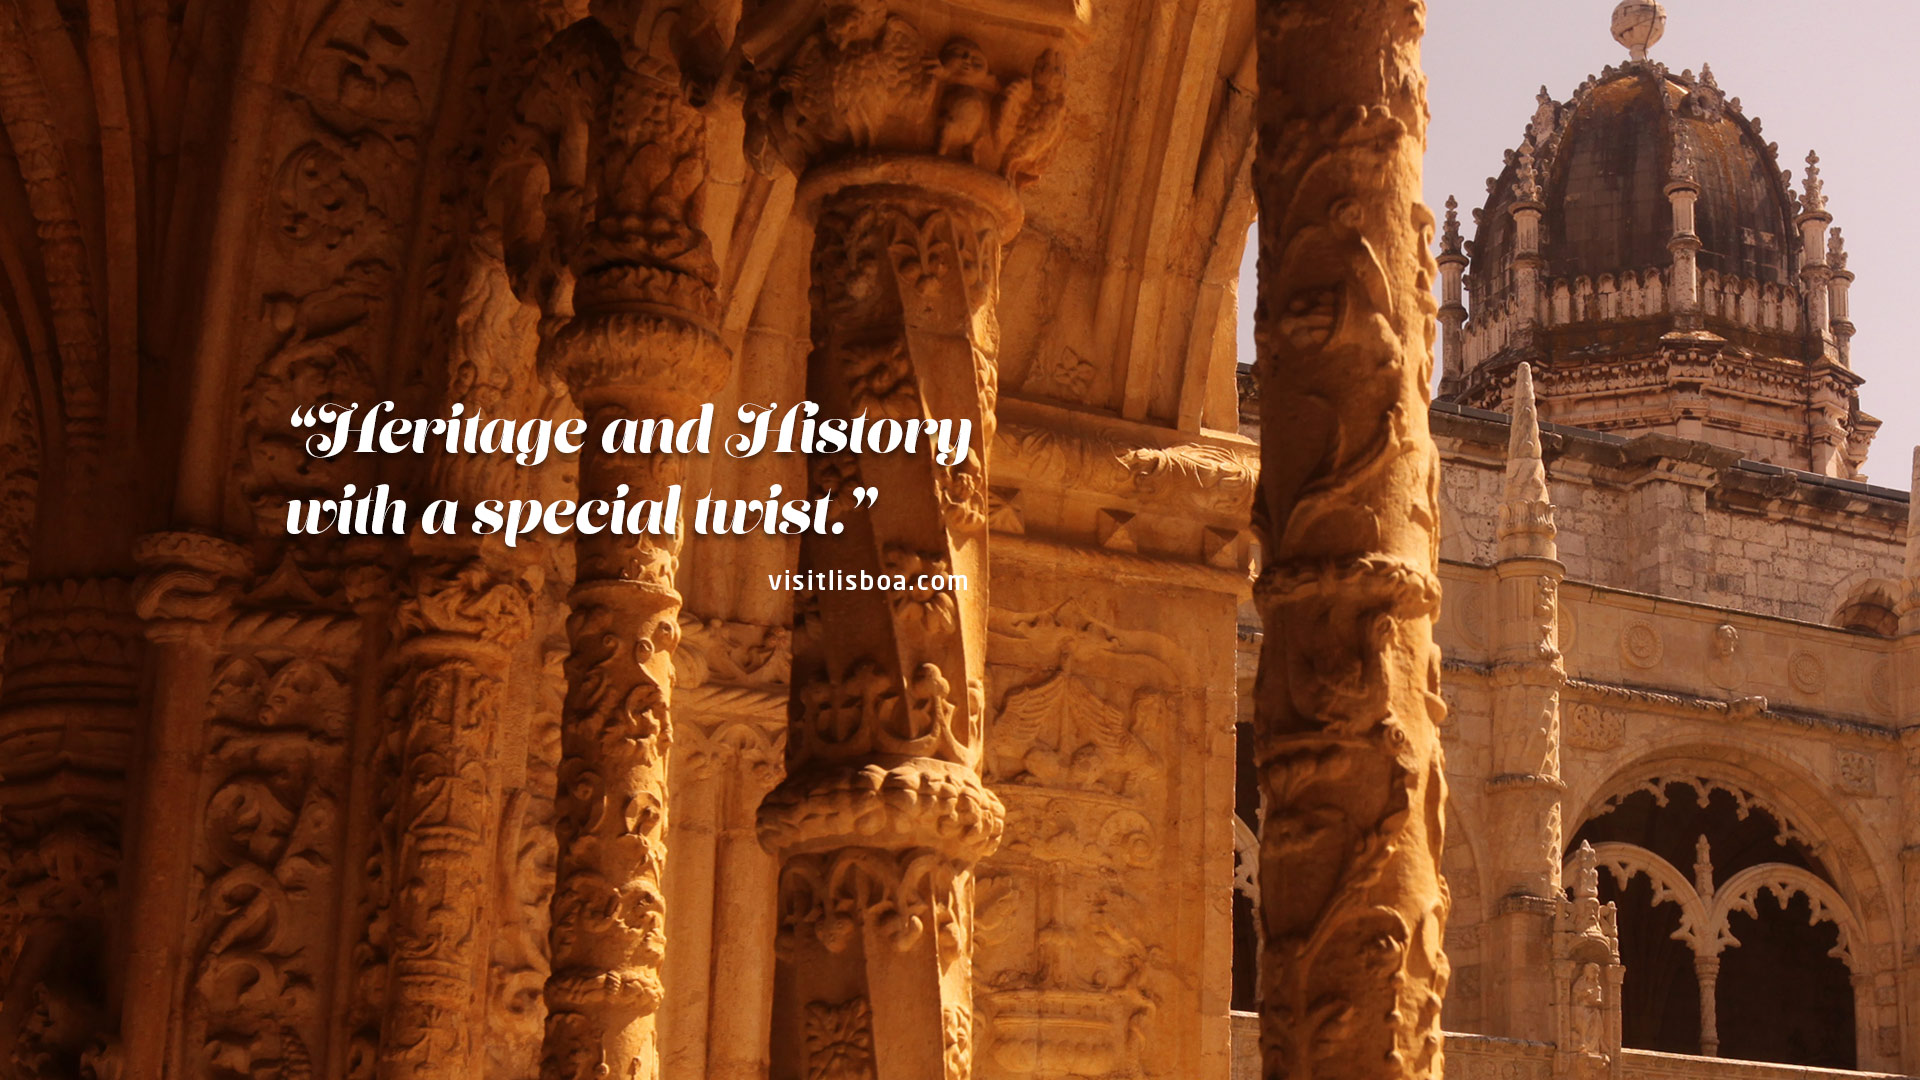 """Heritage and History with a special twist."" visitlisboa.com"